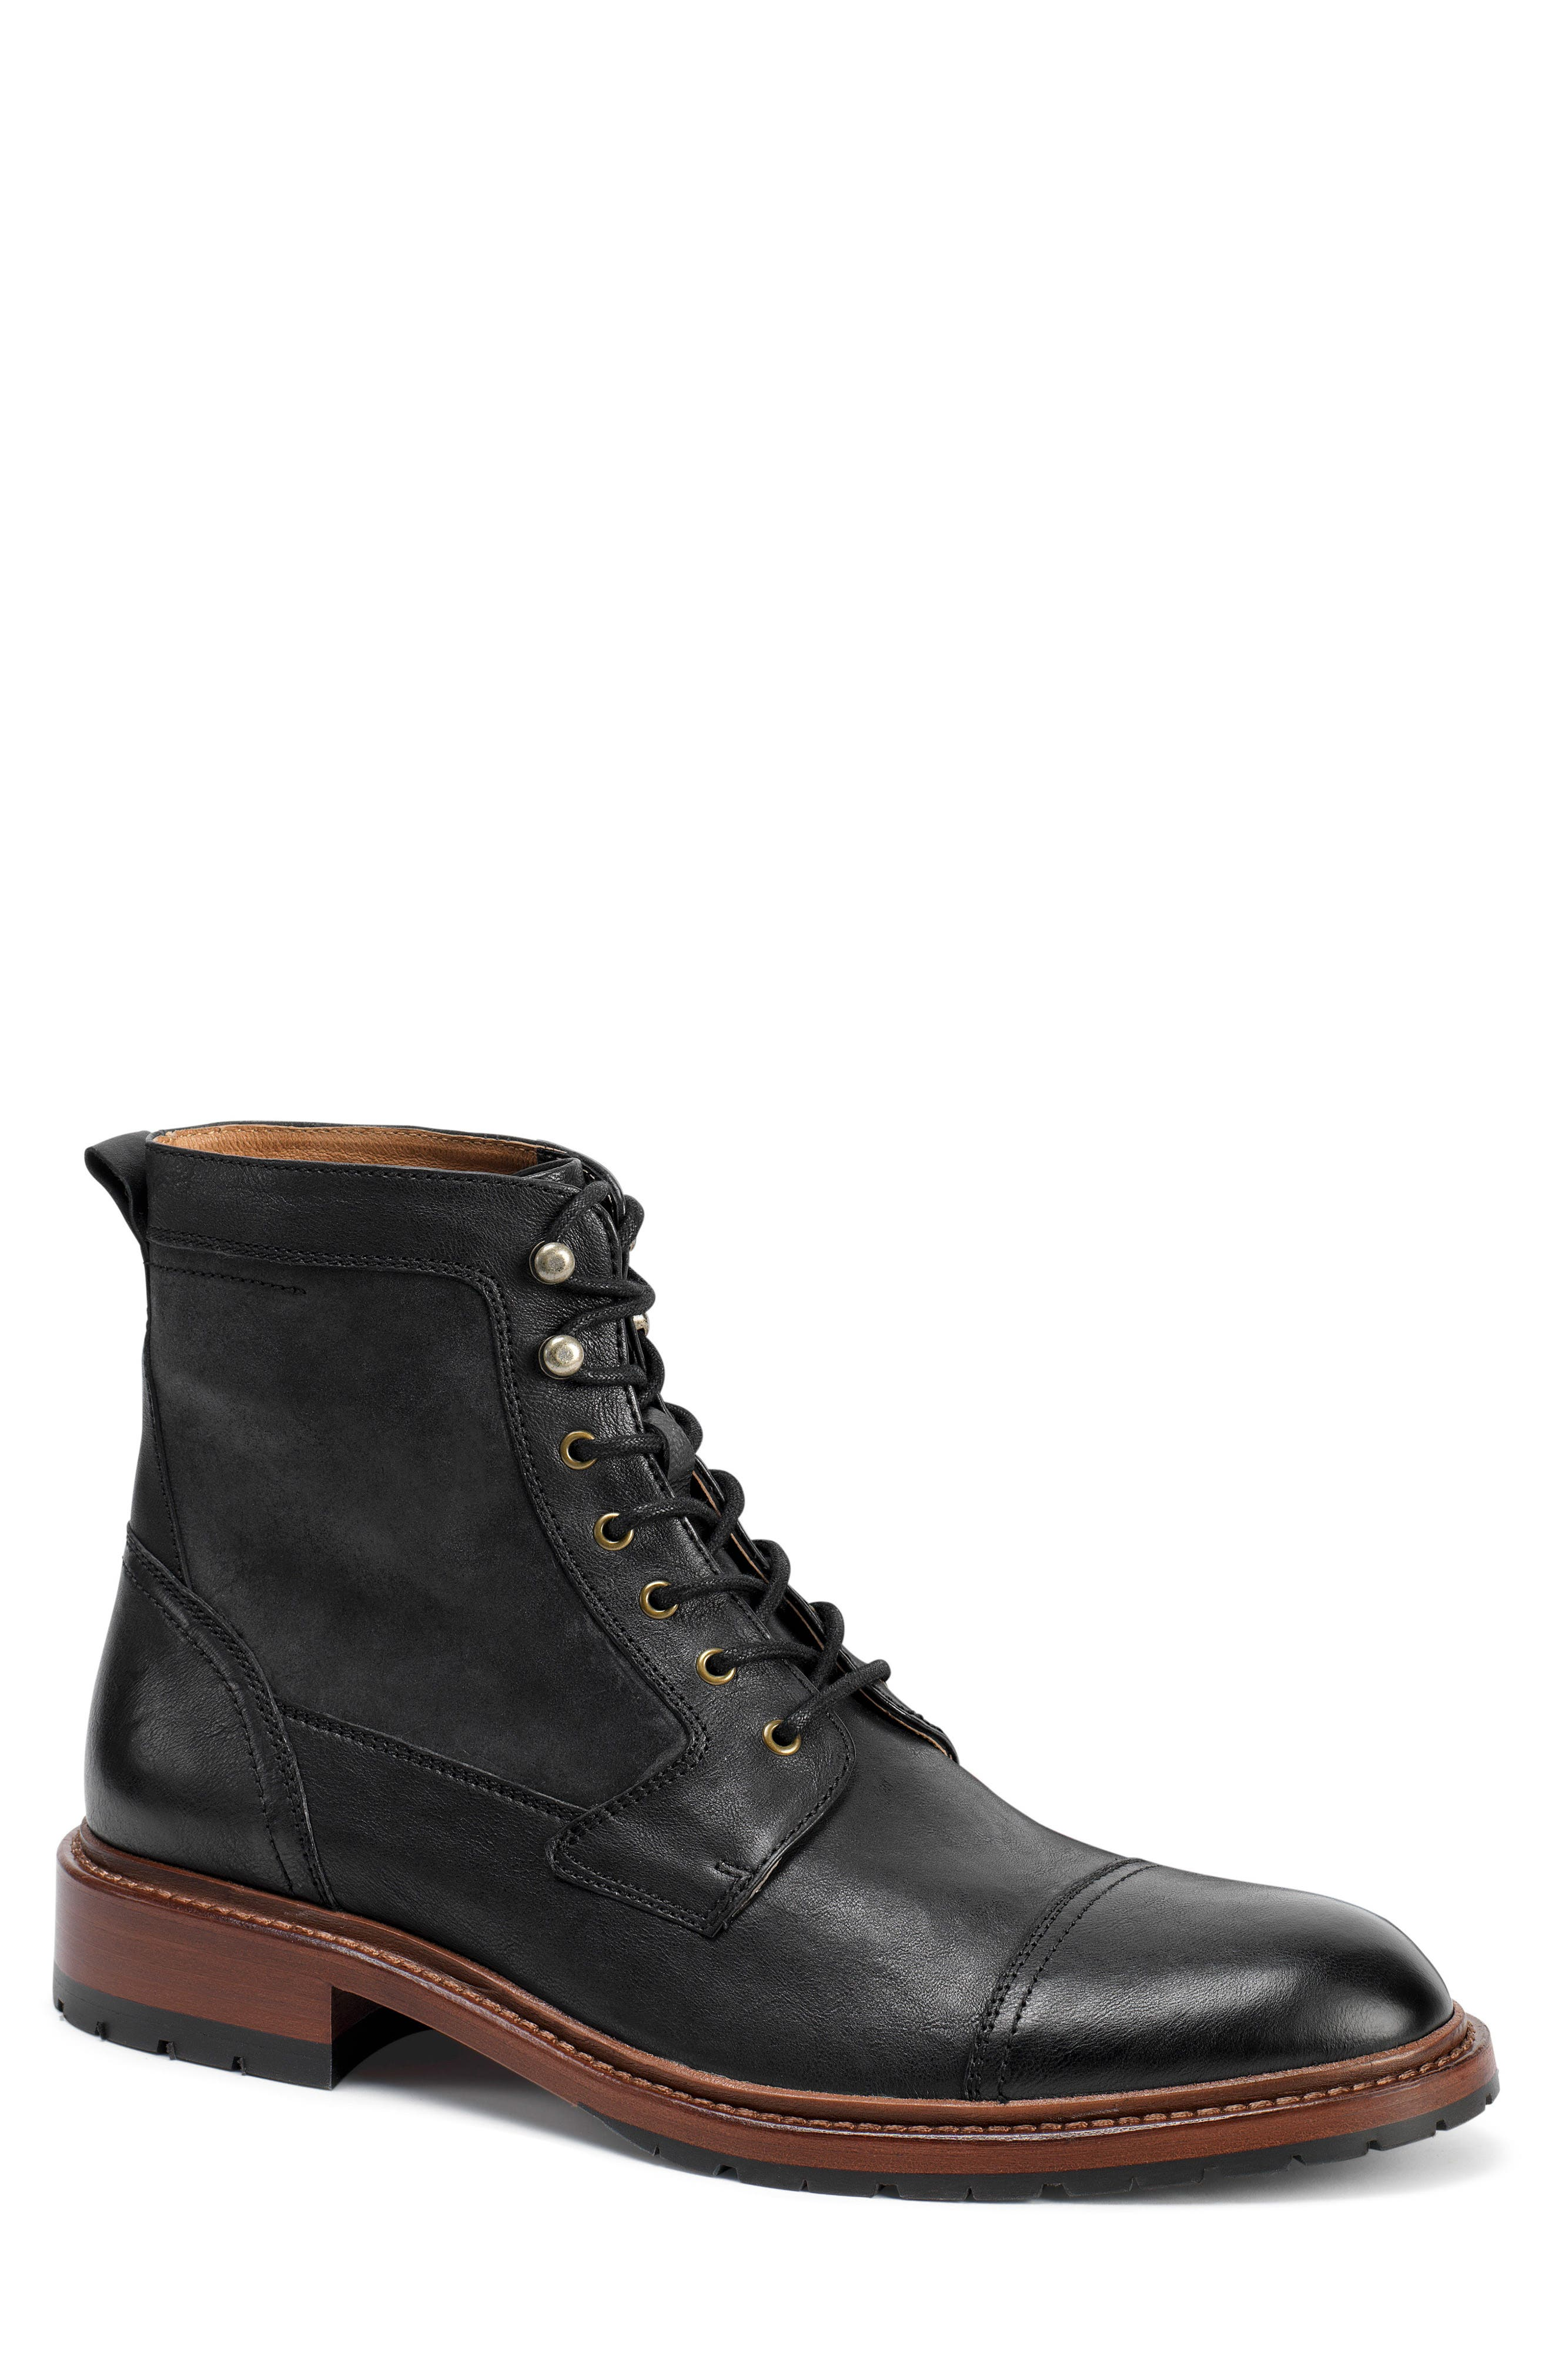 'Lowell' Cap Toe Boot,                             Main thumbnail 1, color,                             BLACK WASHED LEATHER